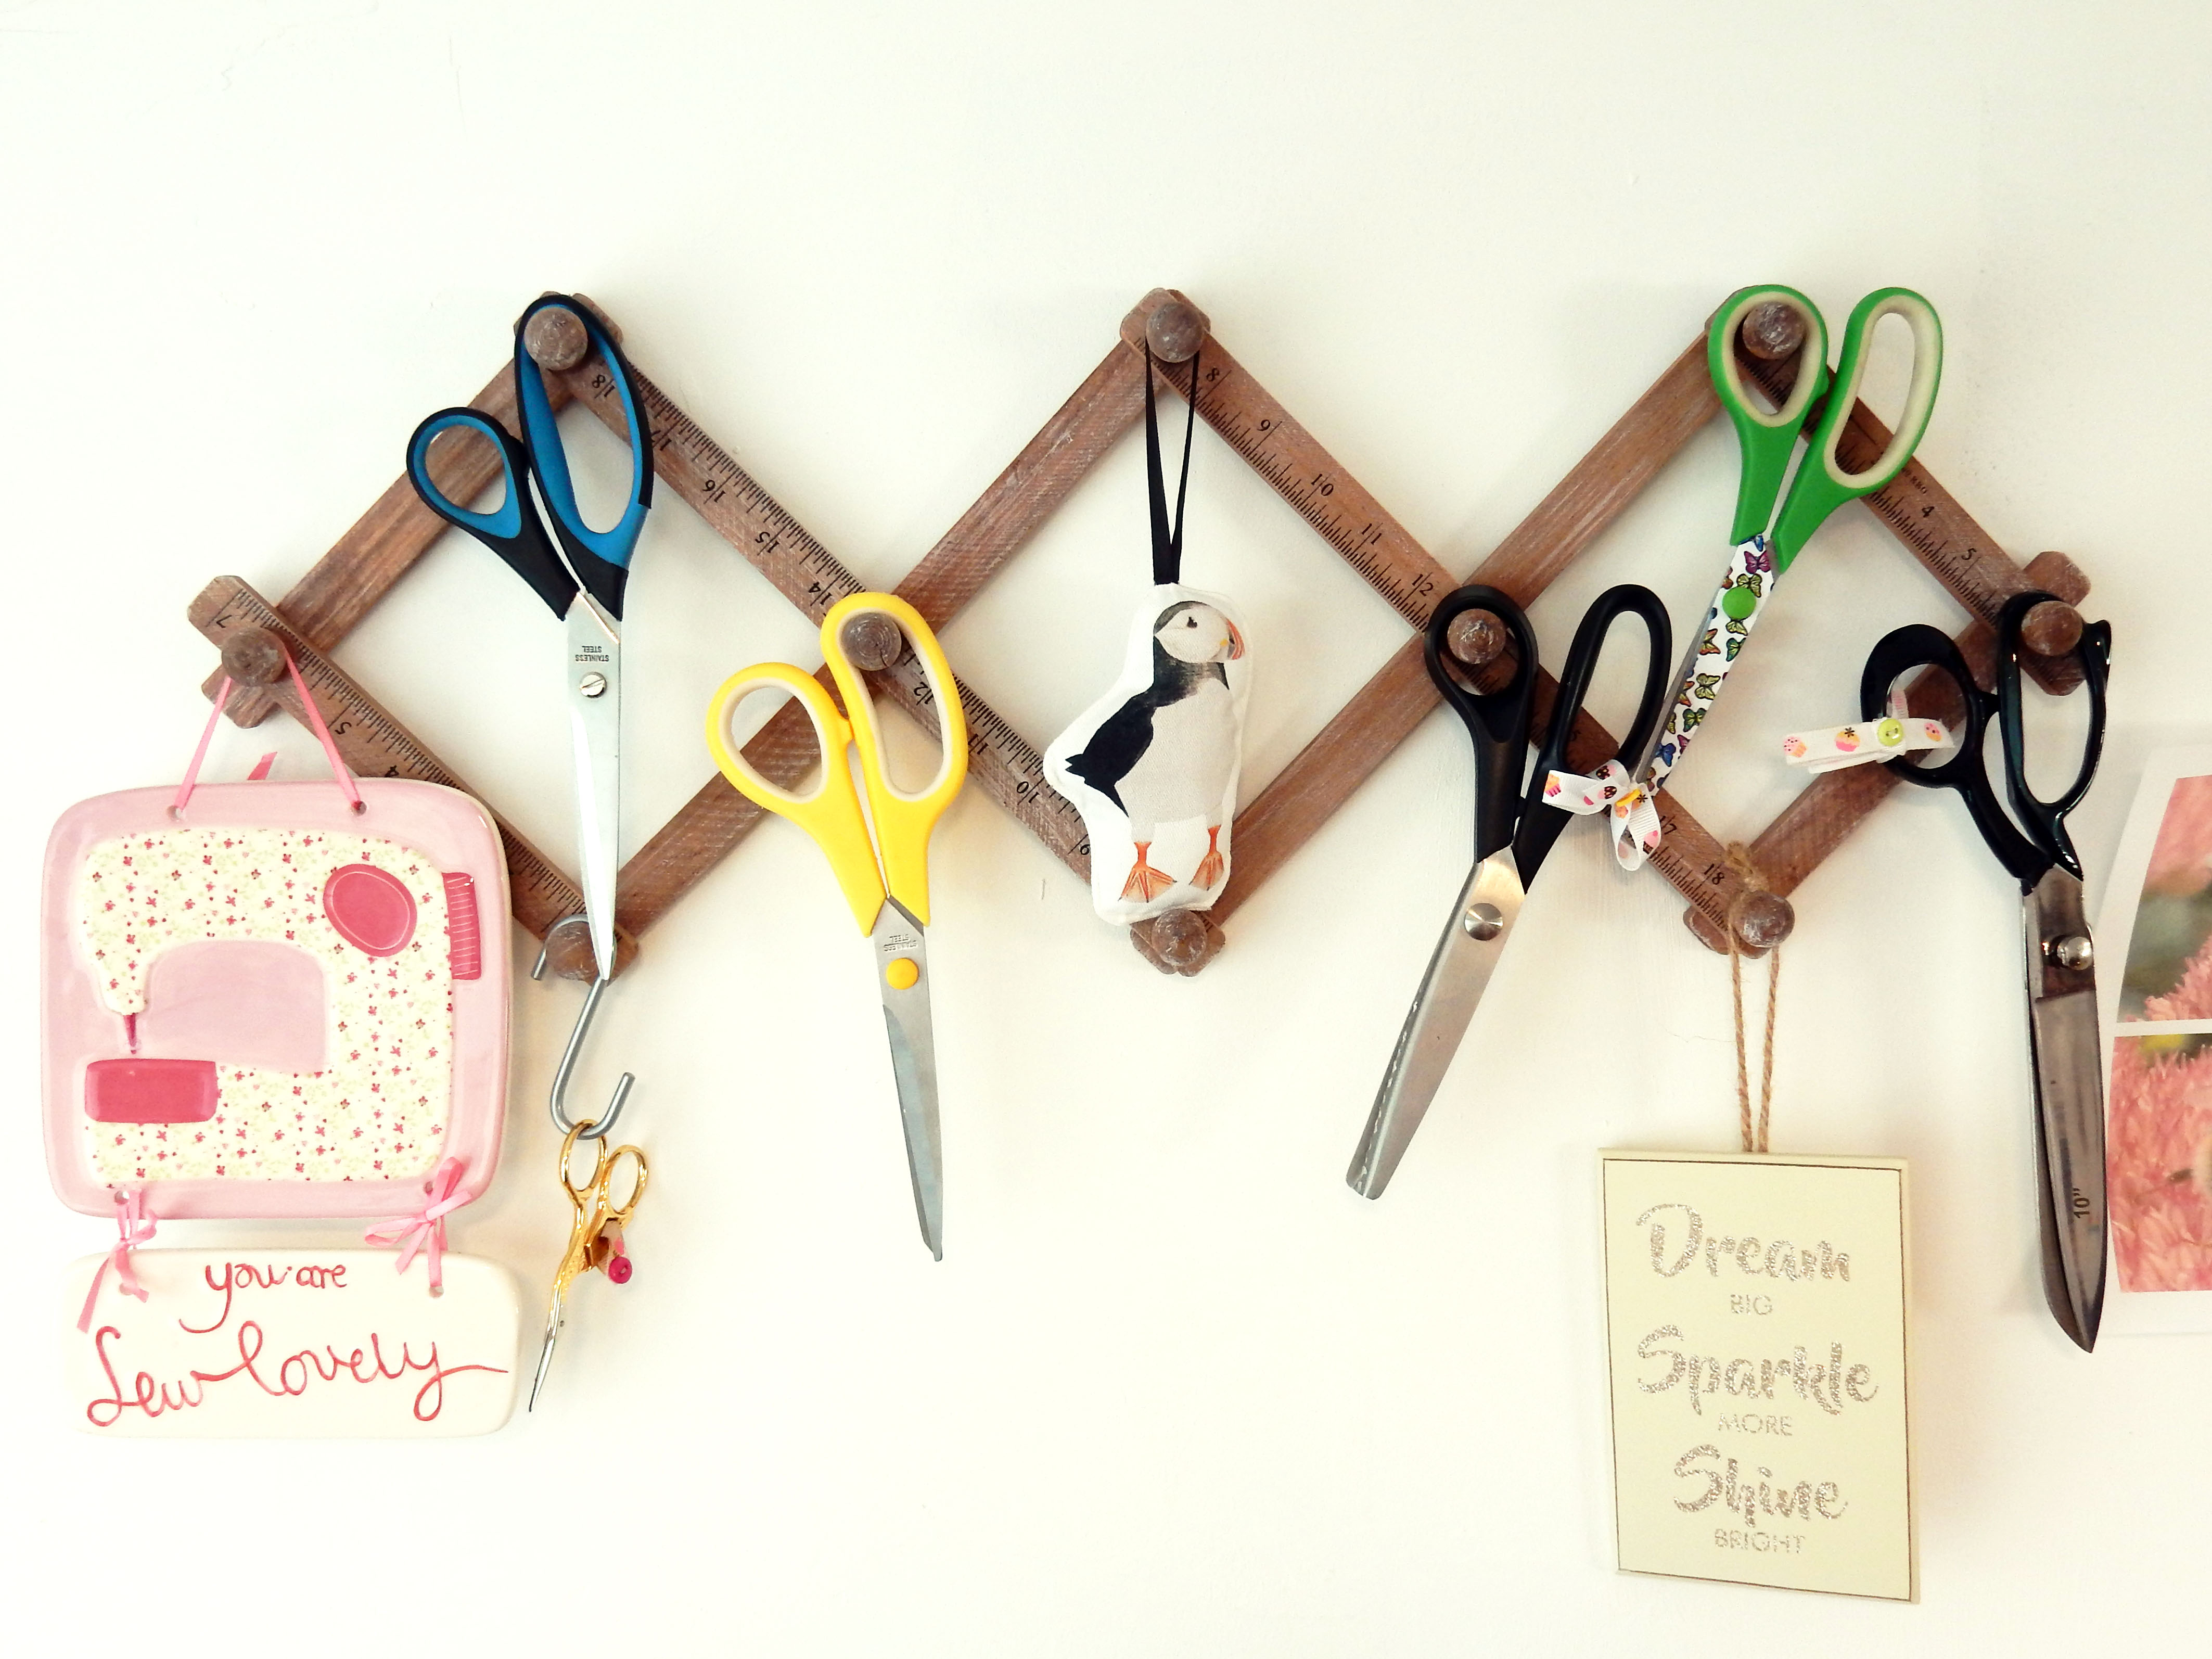 Drawn by Rhiannon sewing tools - scissors